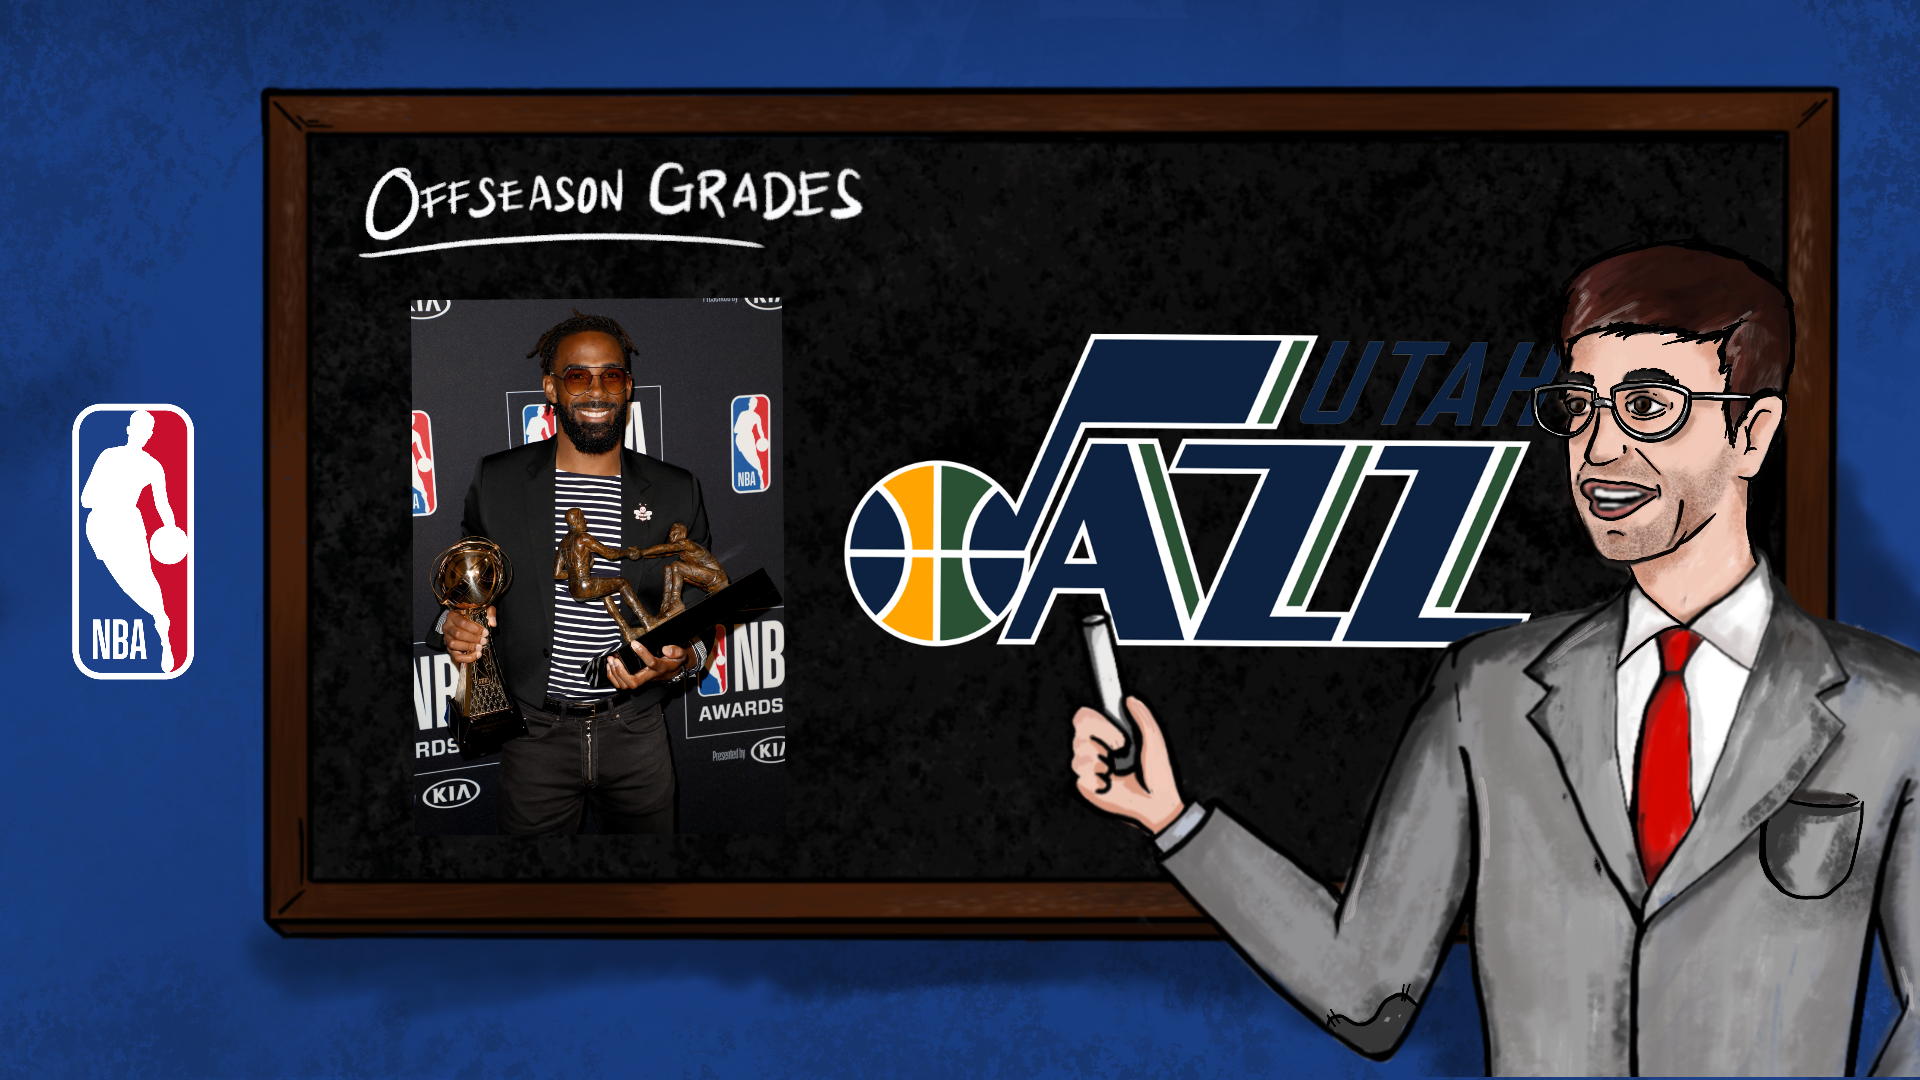 Offseason Grades: How the Utah Jazz became the West's stealth contenders